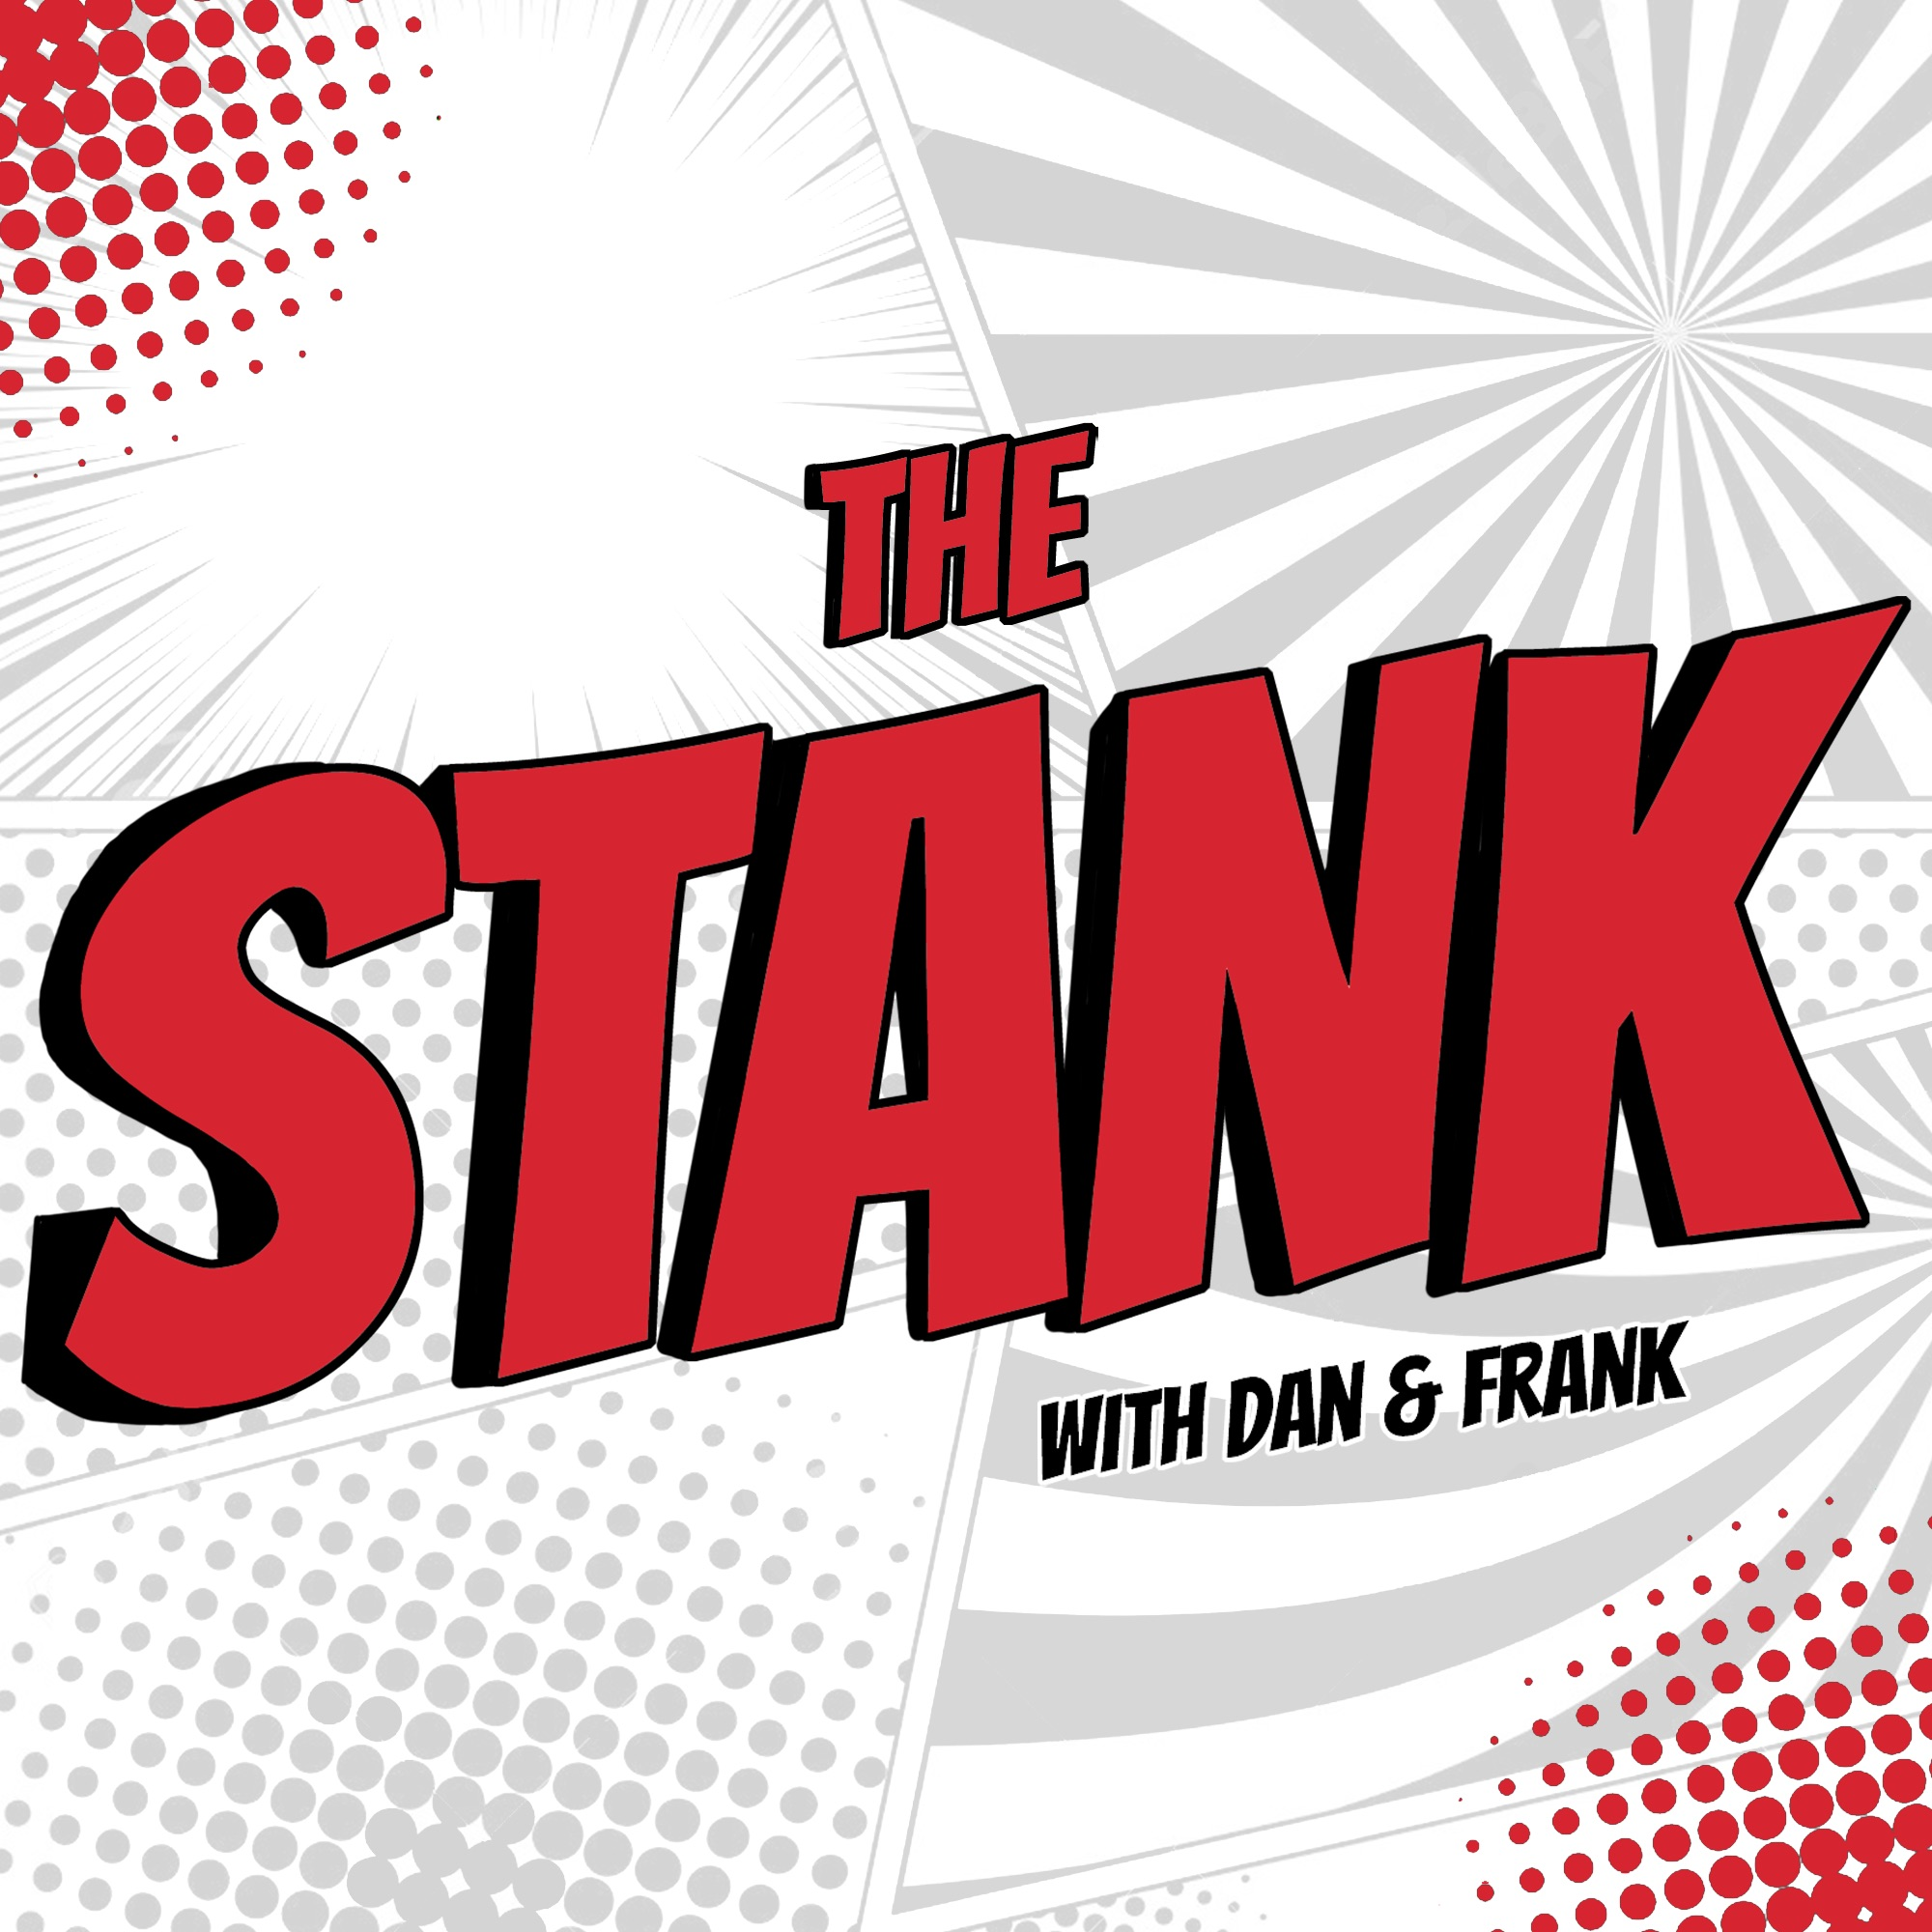 The Stank